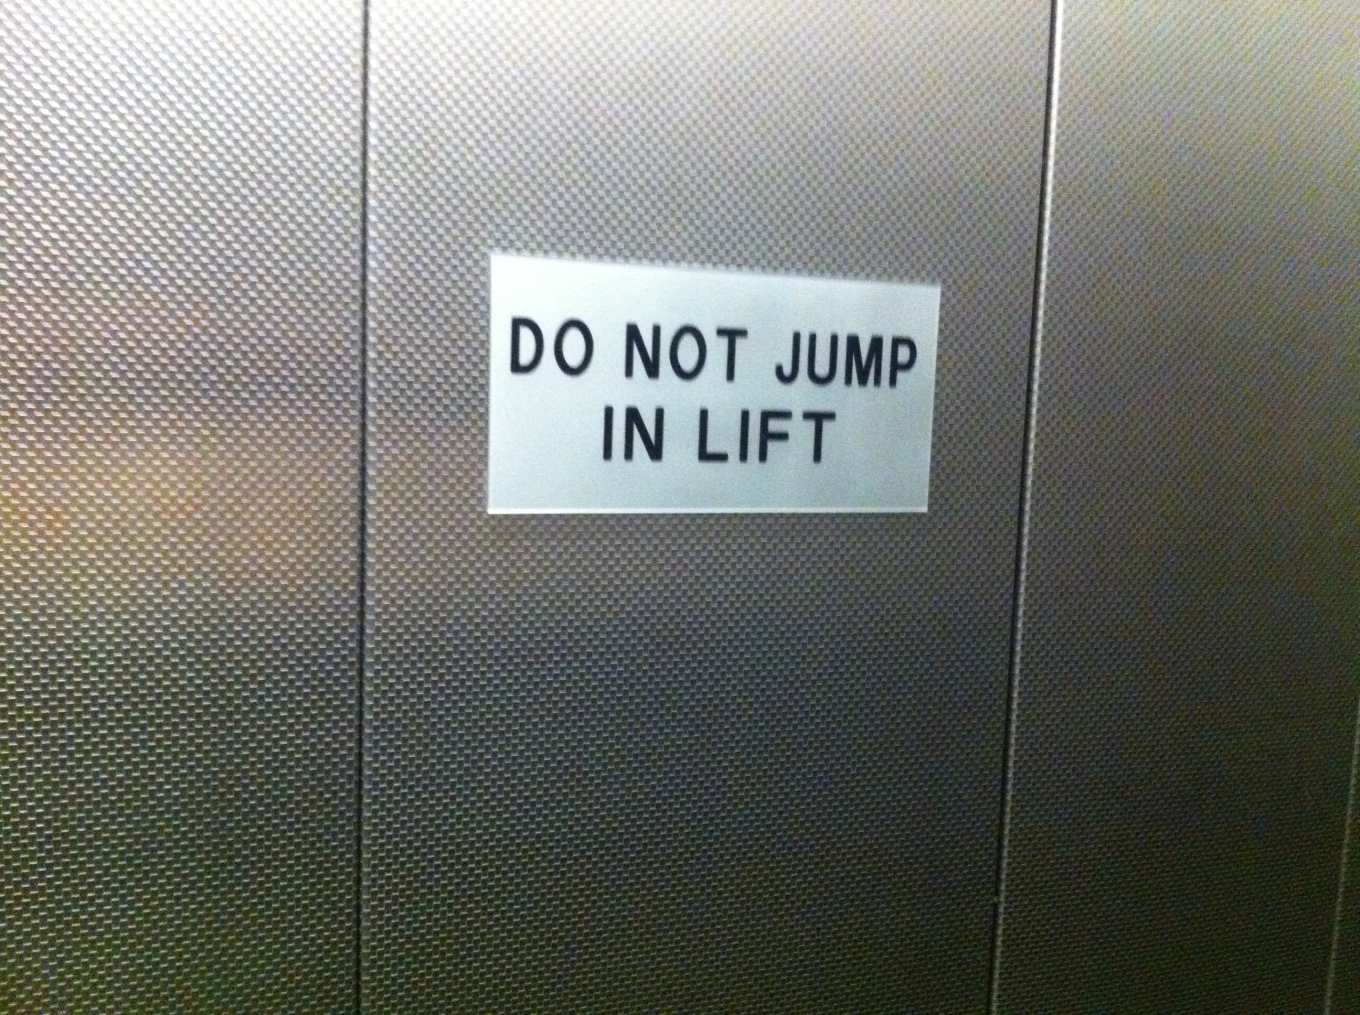 do not jump in lift